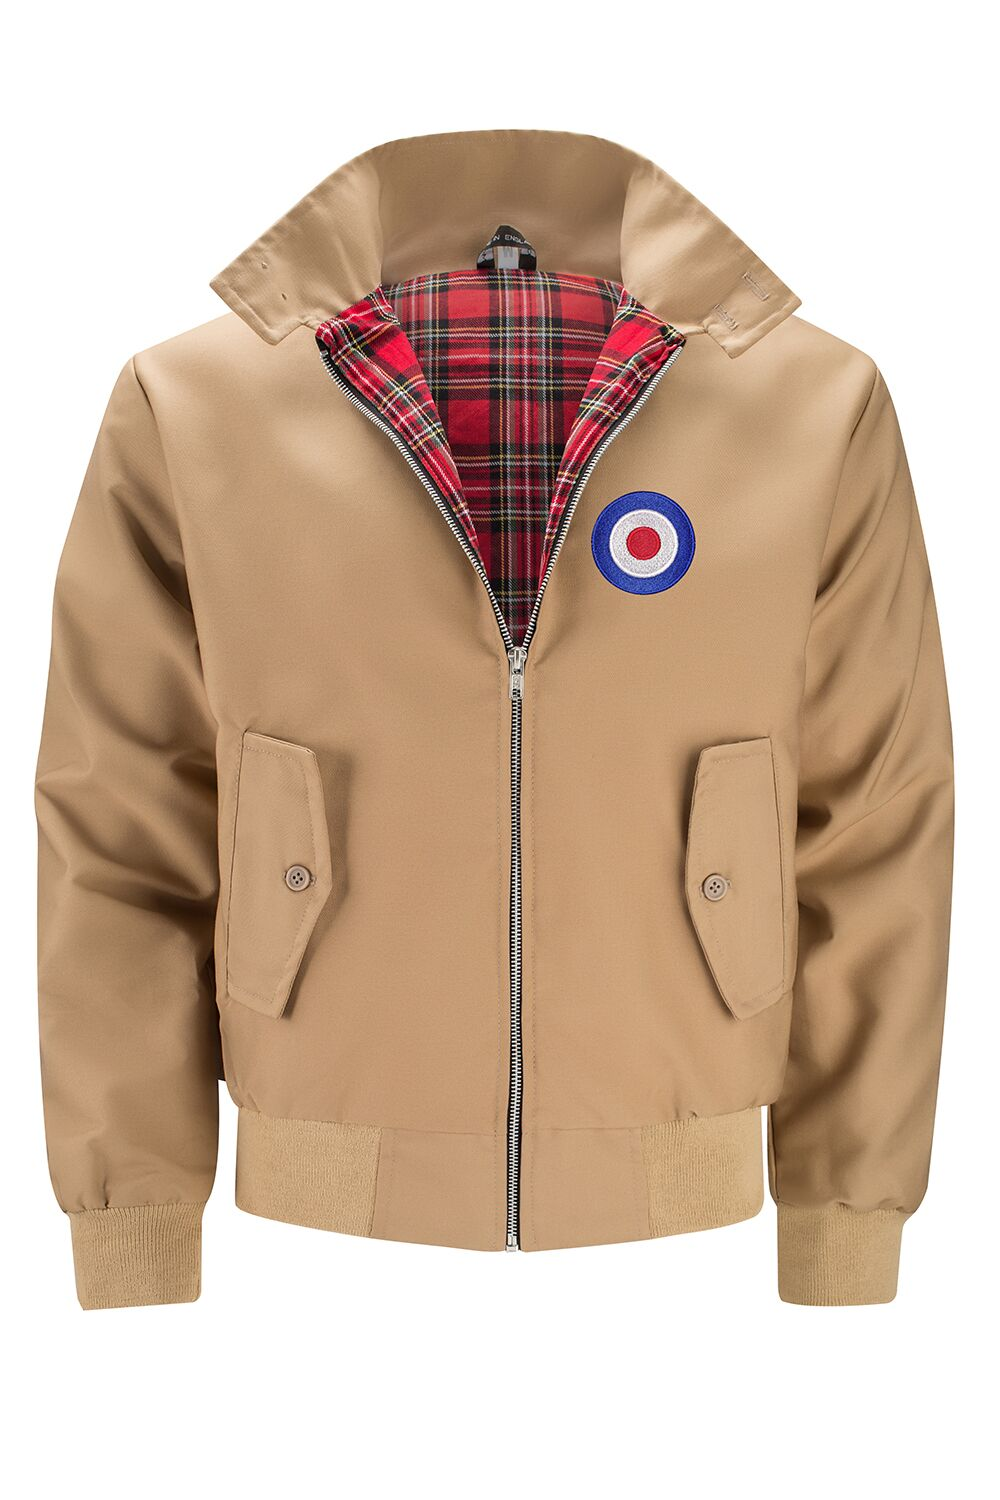 Mens Classic Harrington Jacket - Camel (with MOD badge)